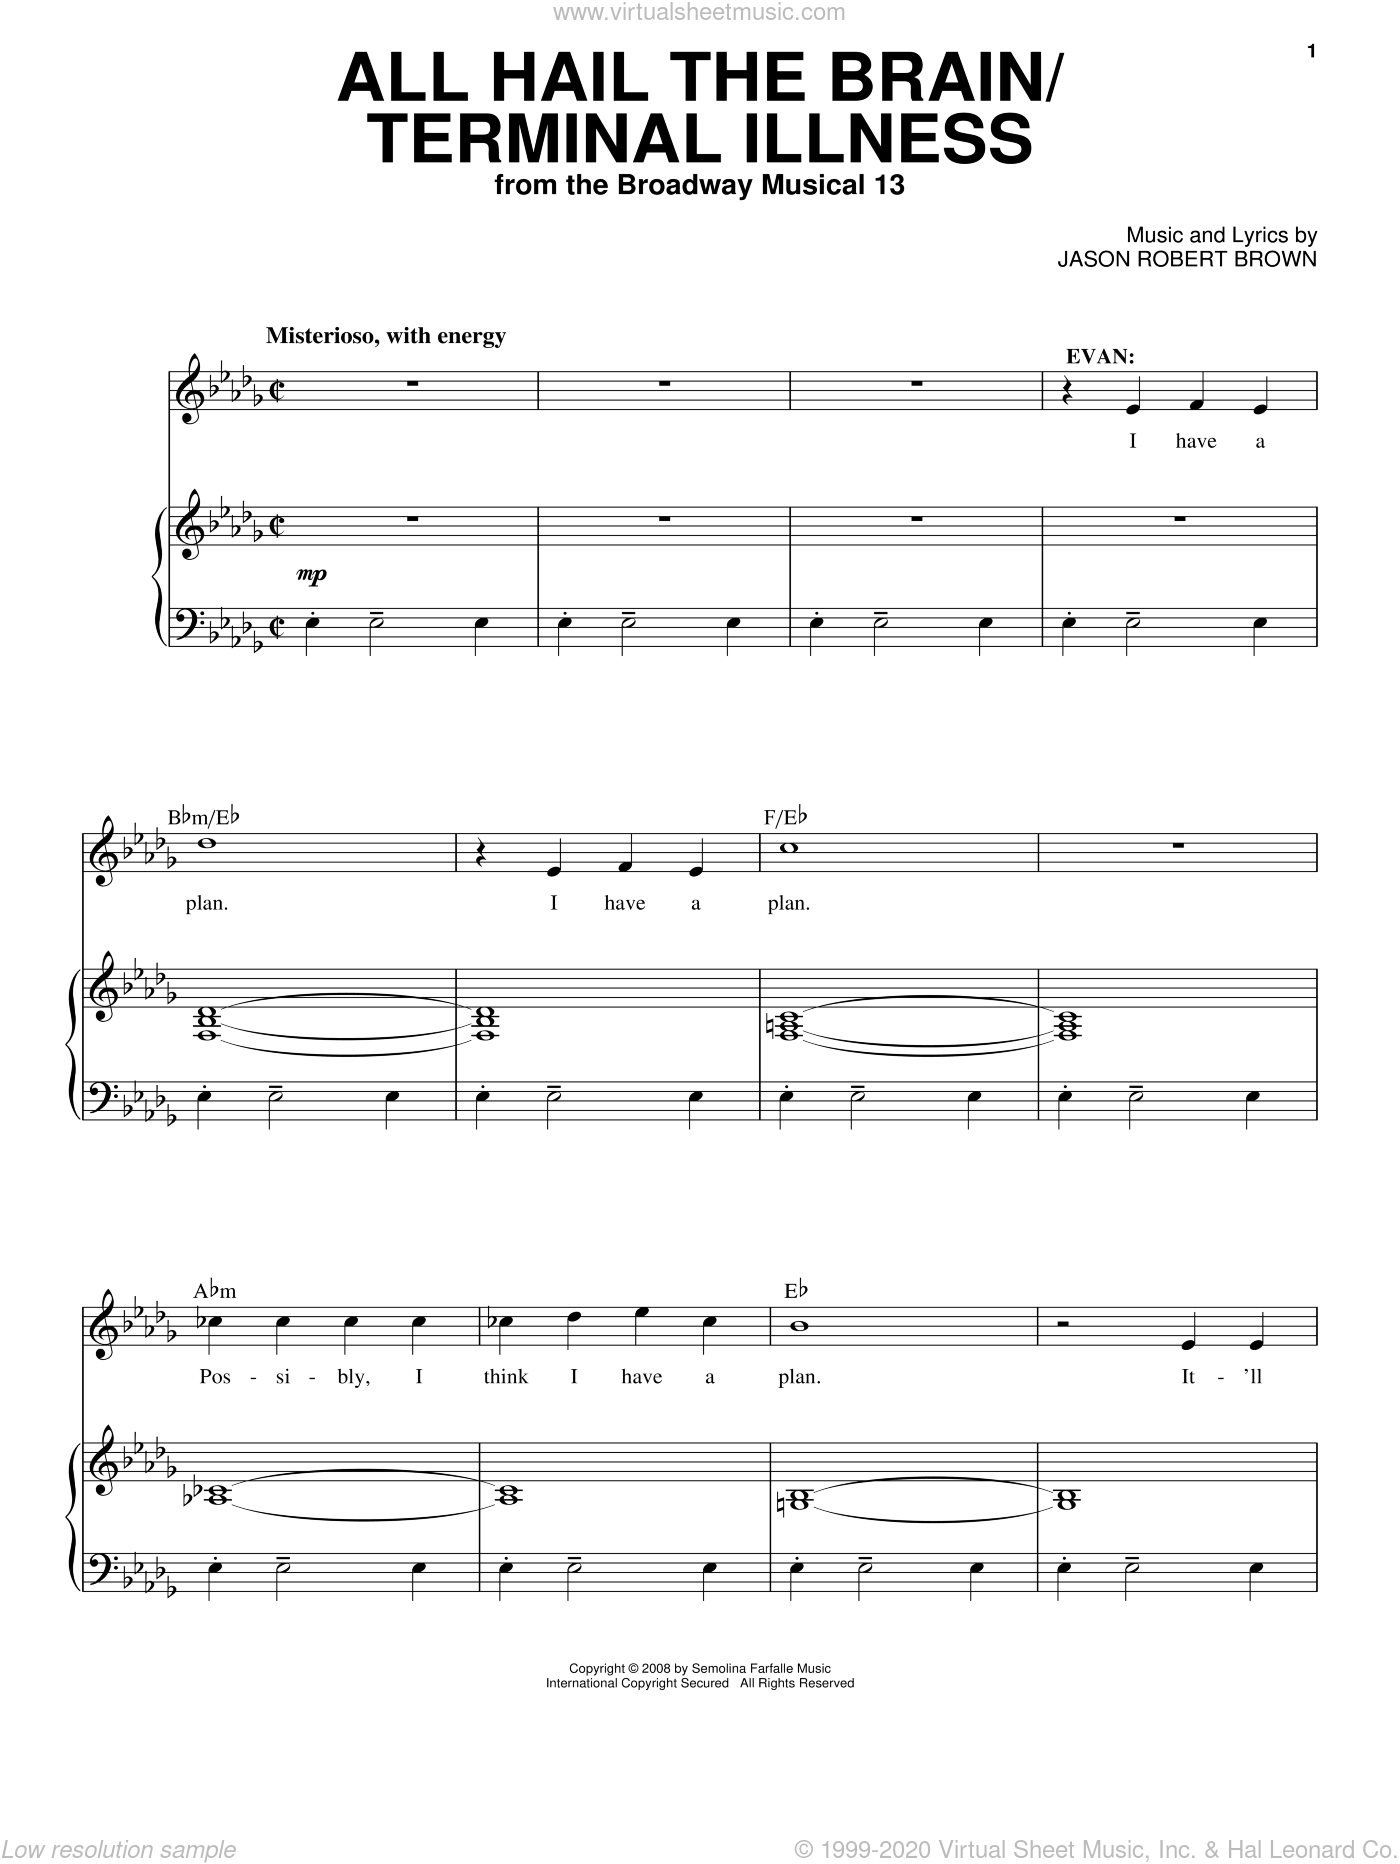 All Hail The Brain / Terminal Illness sheet music for voice and piano by Jason Robert Brown